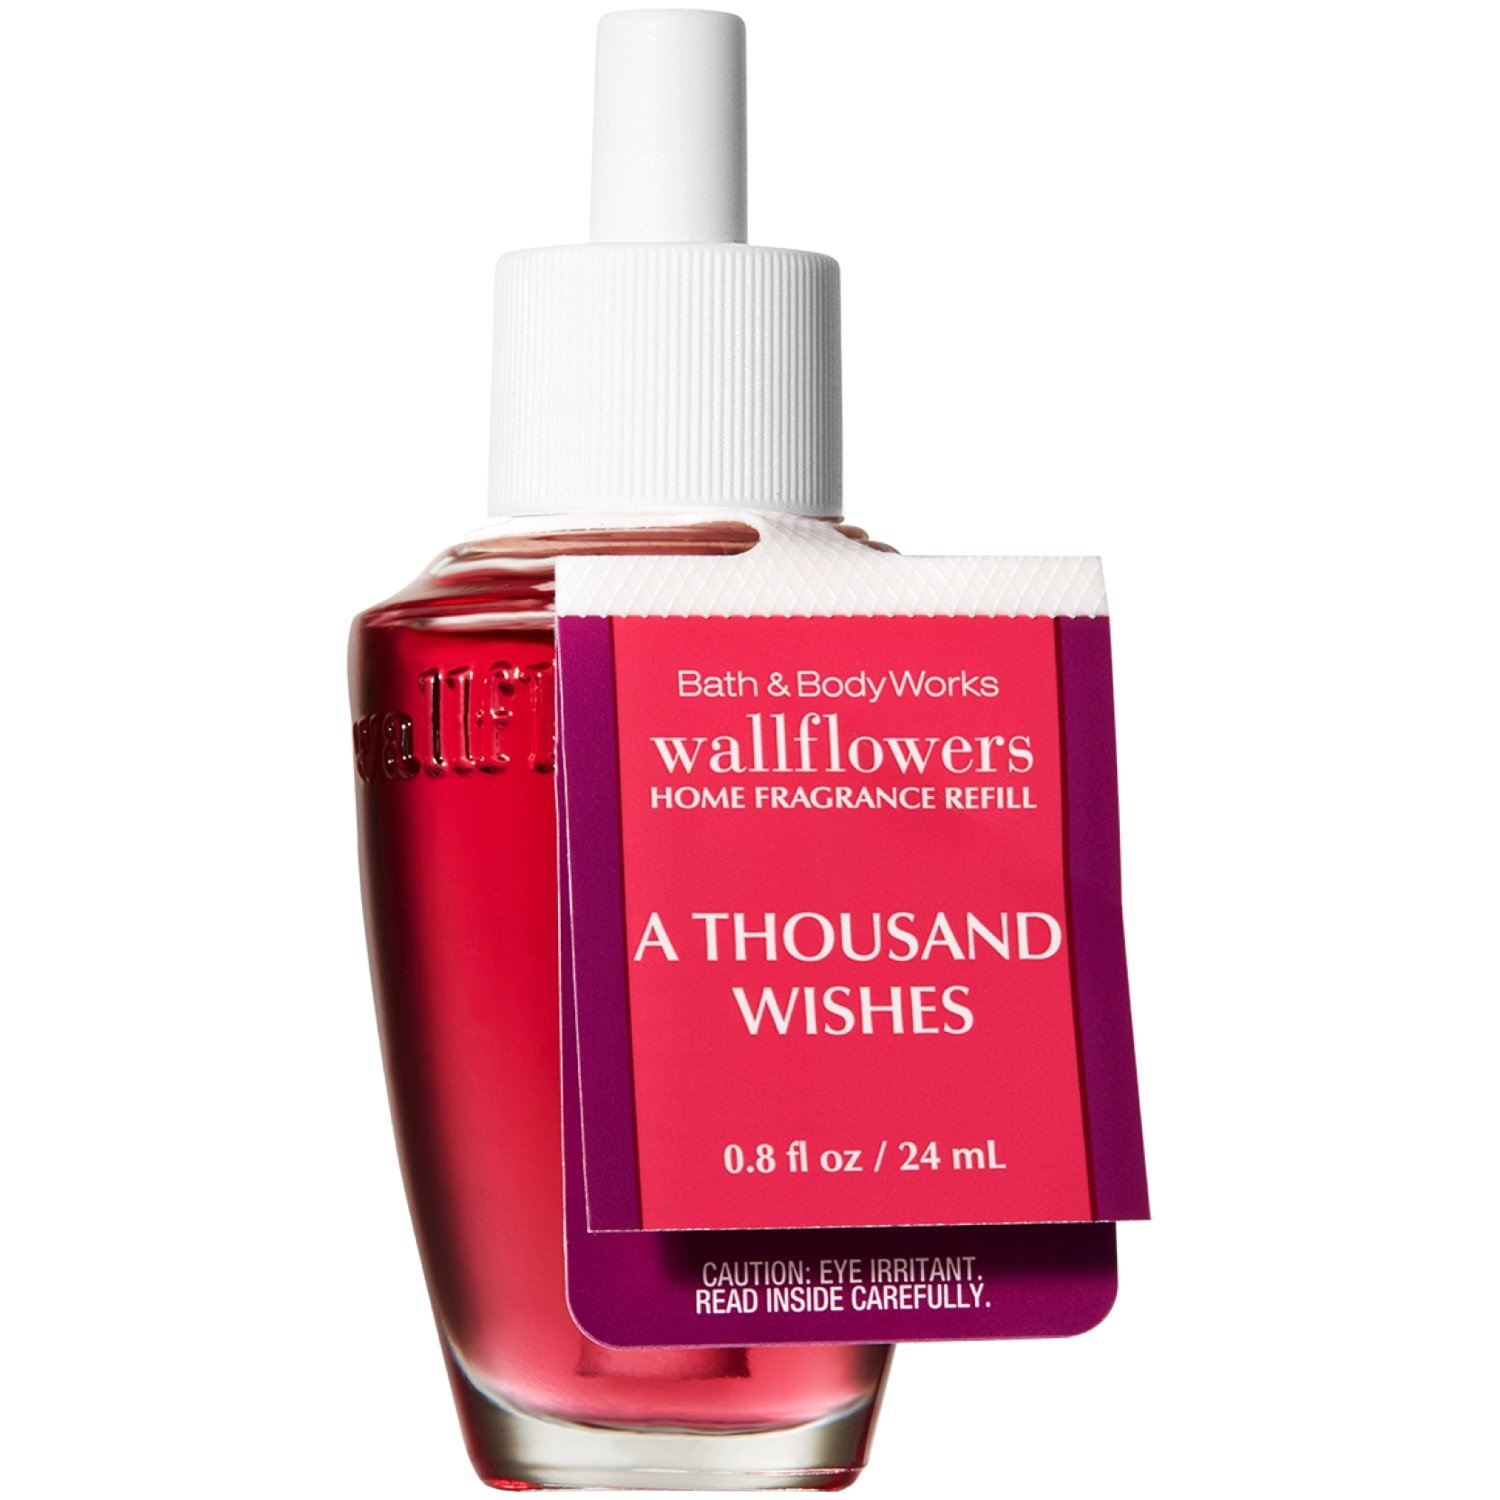 Bath and Body Works Wallflowers Single Refill Signature Collection (A Thousand Wishes)